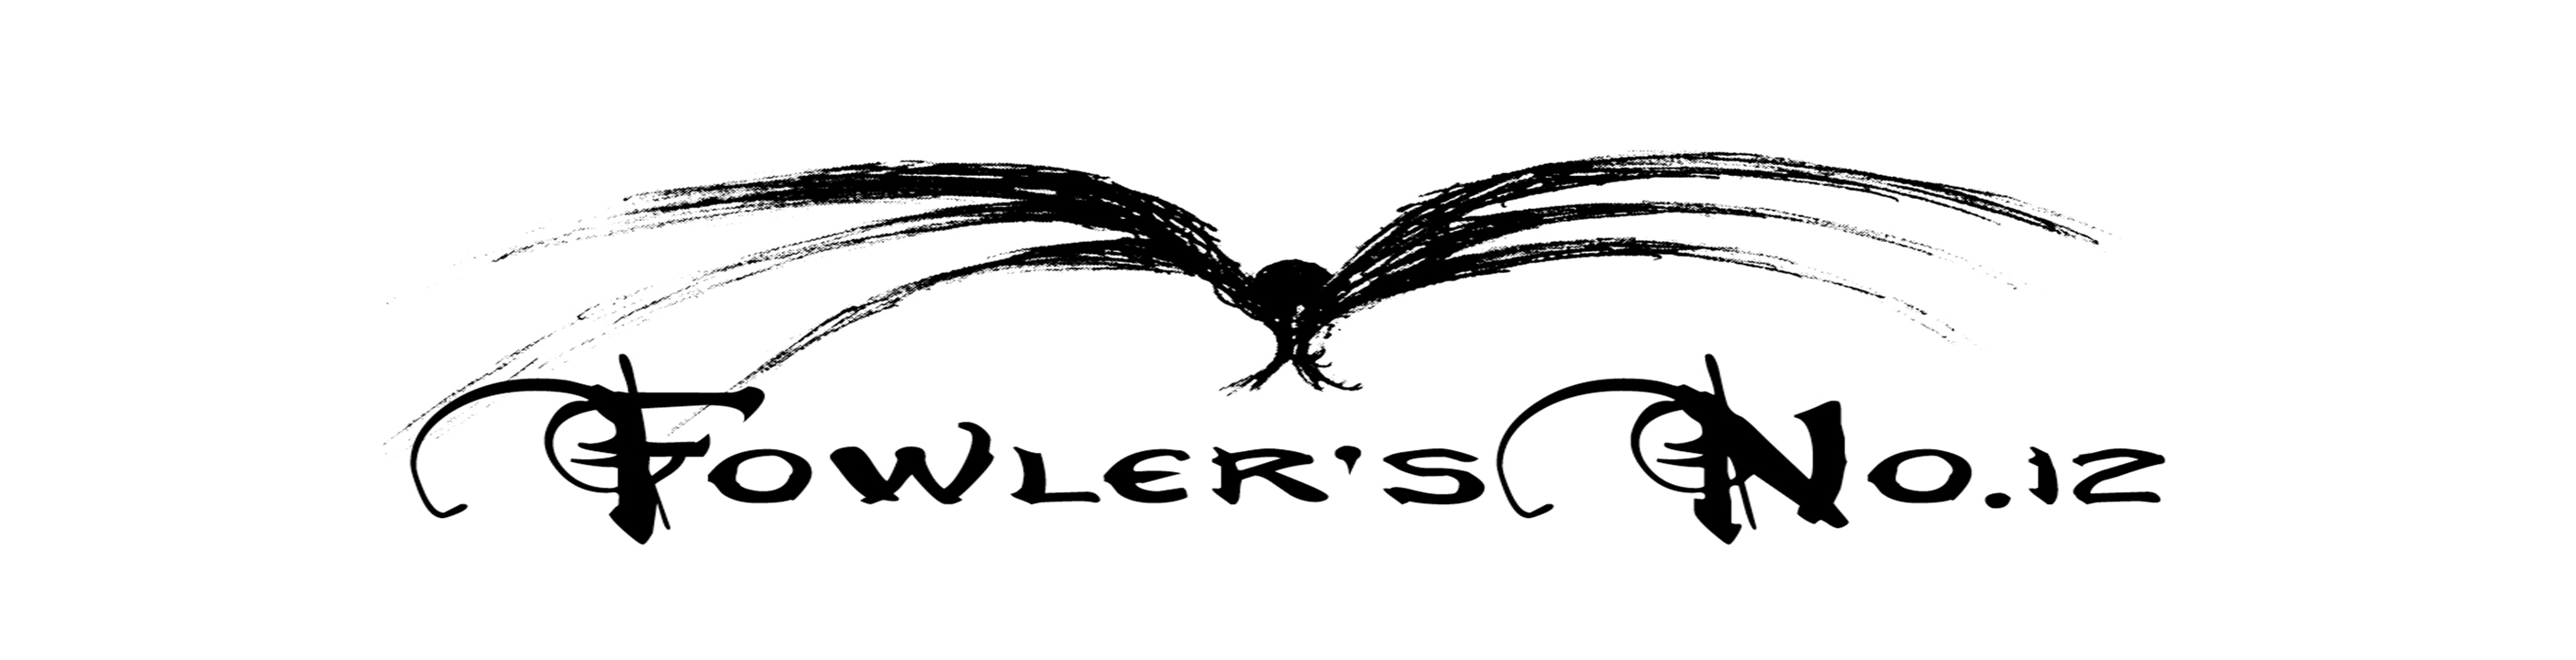 cropped-Fowlers-Logo-1.png